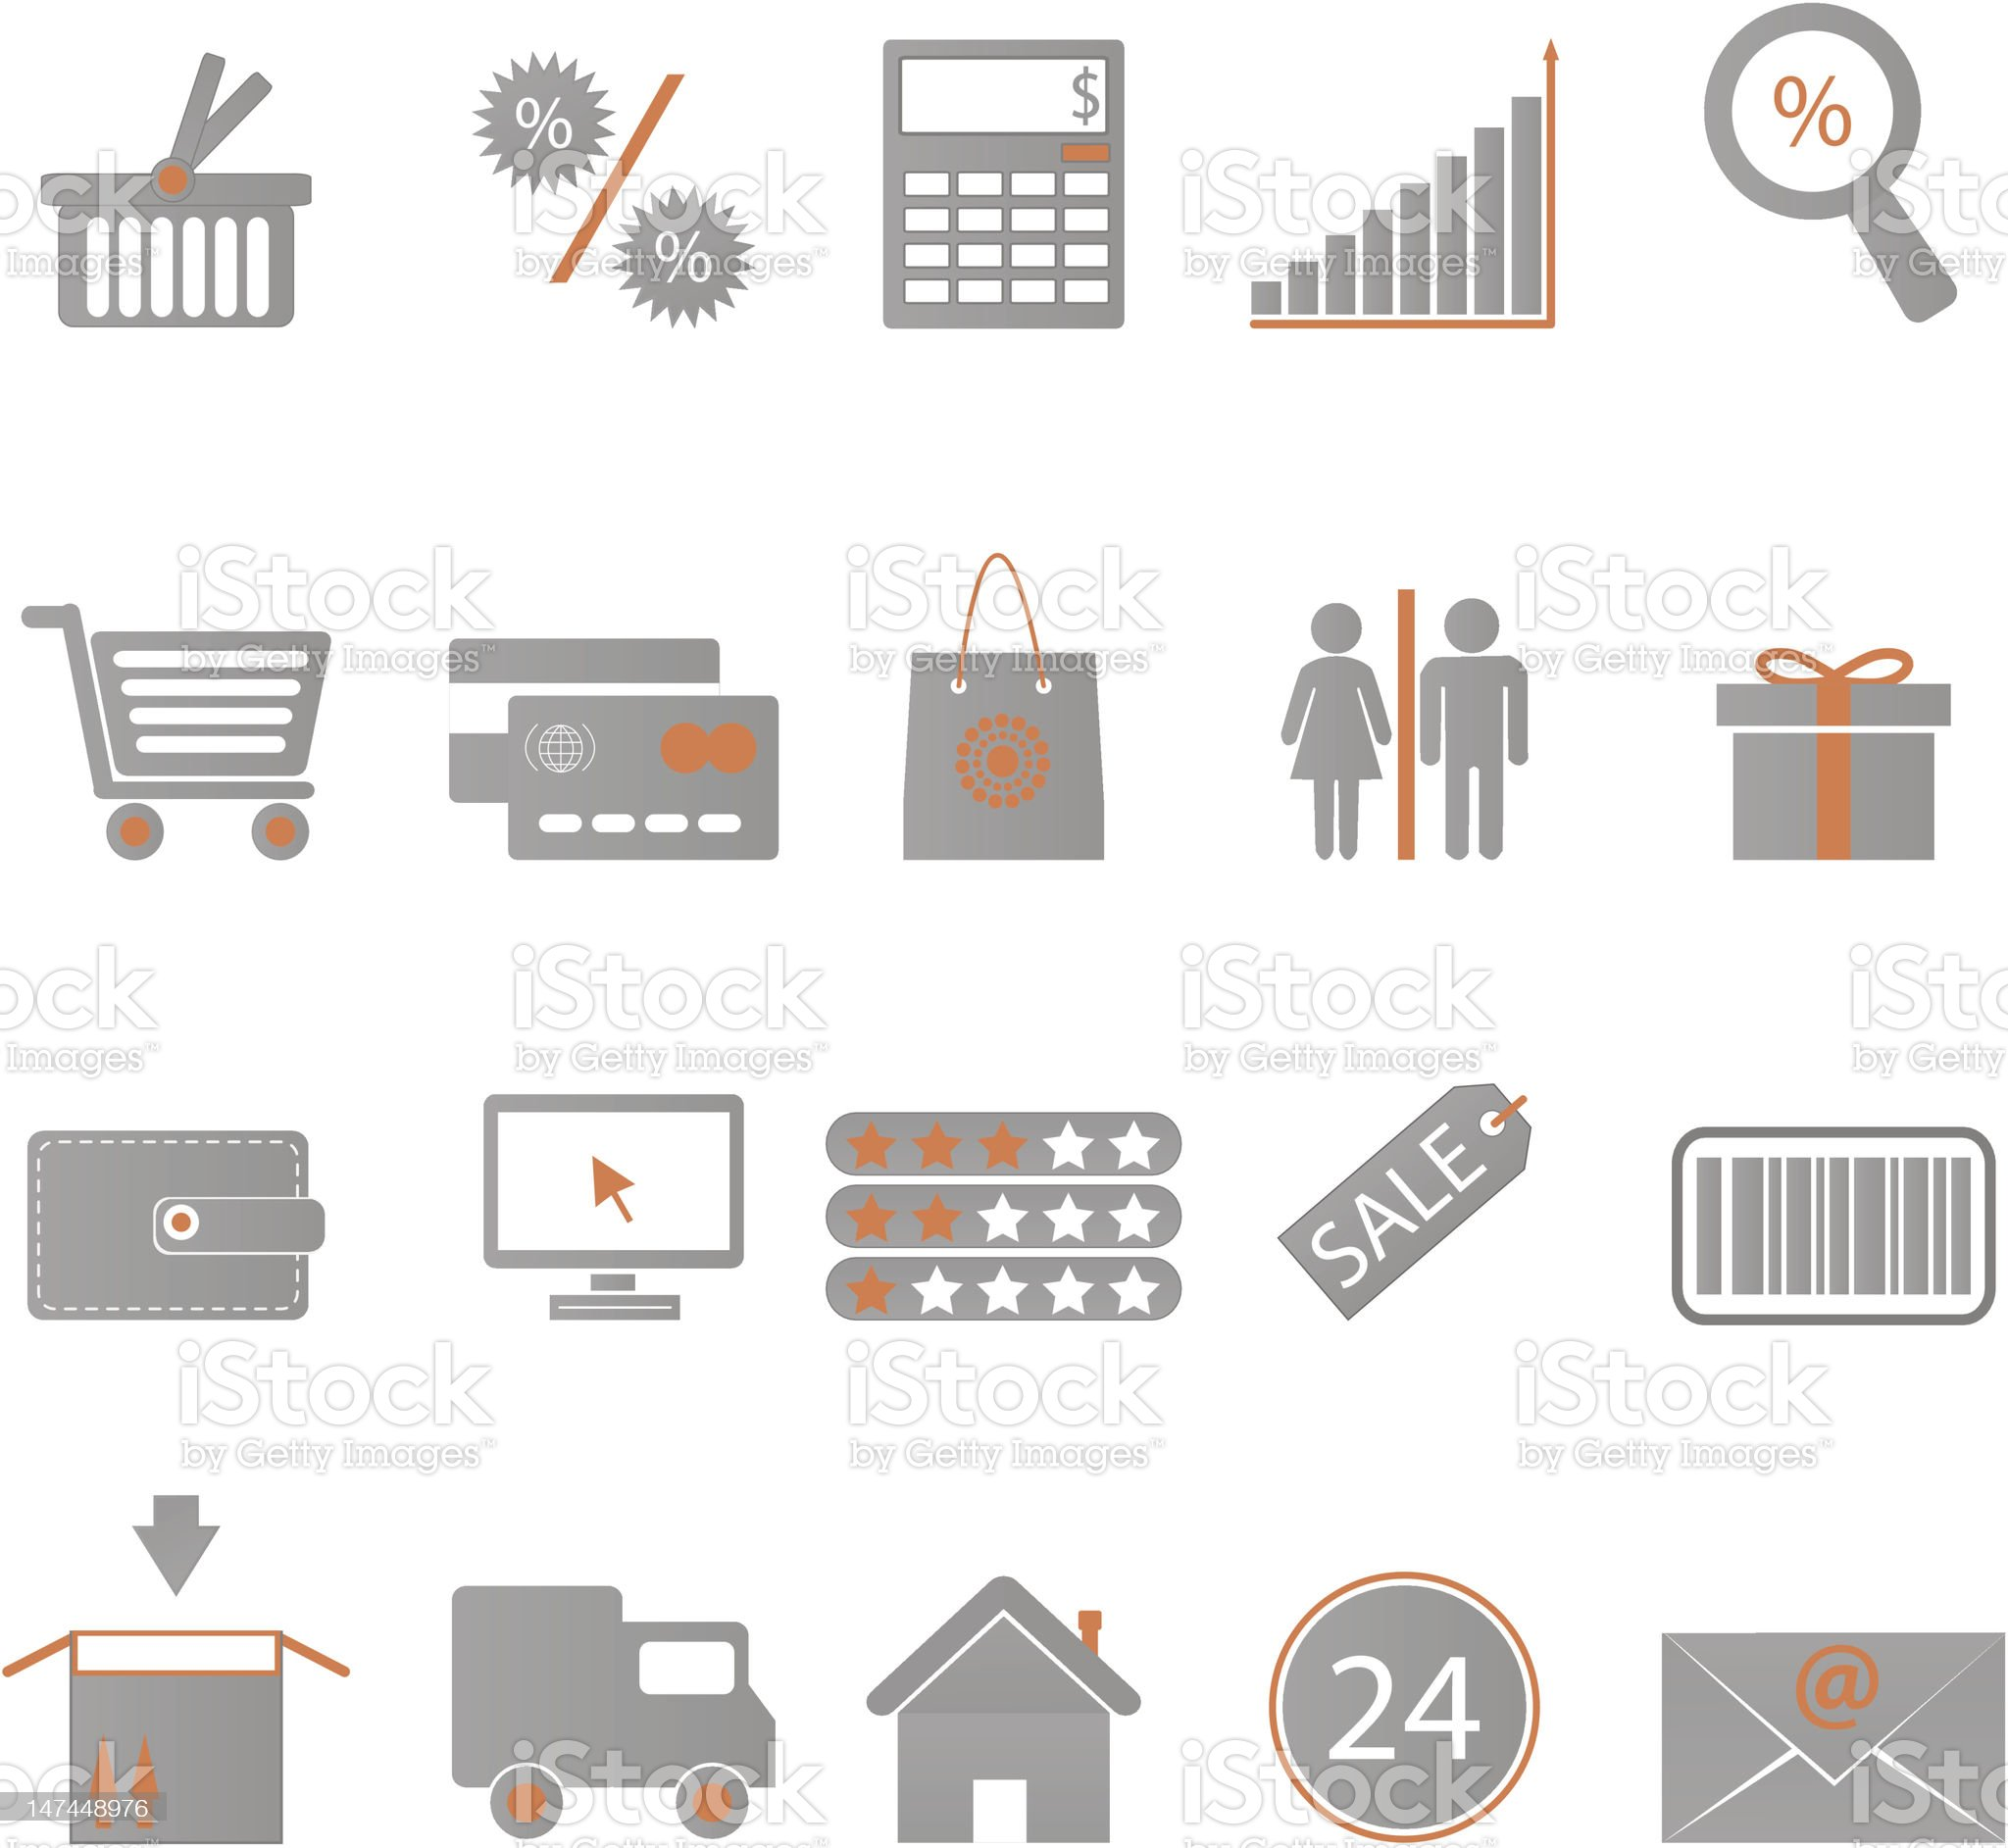 Icons Shopping royalty-free stock vector art